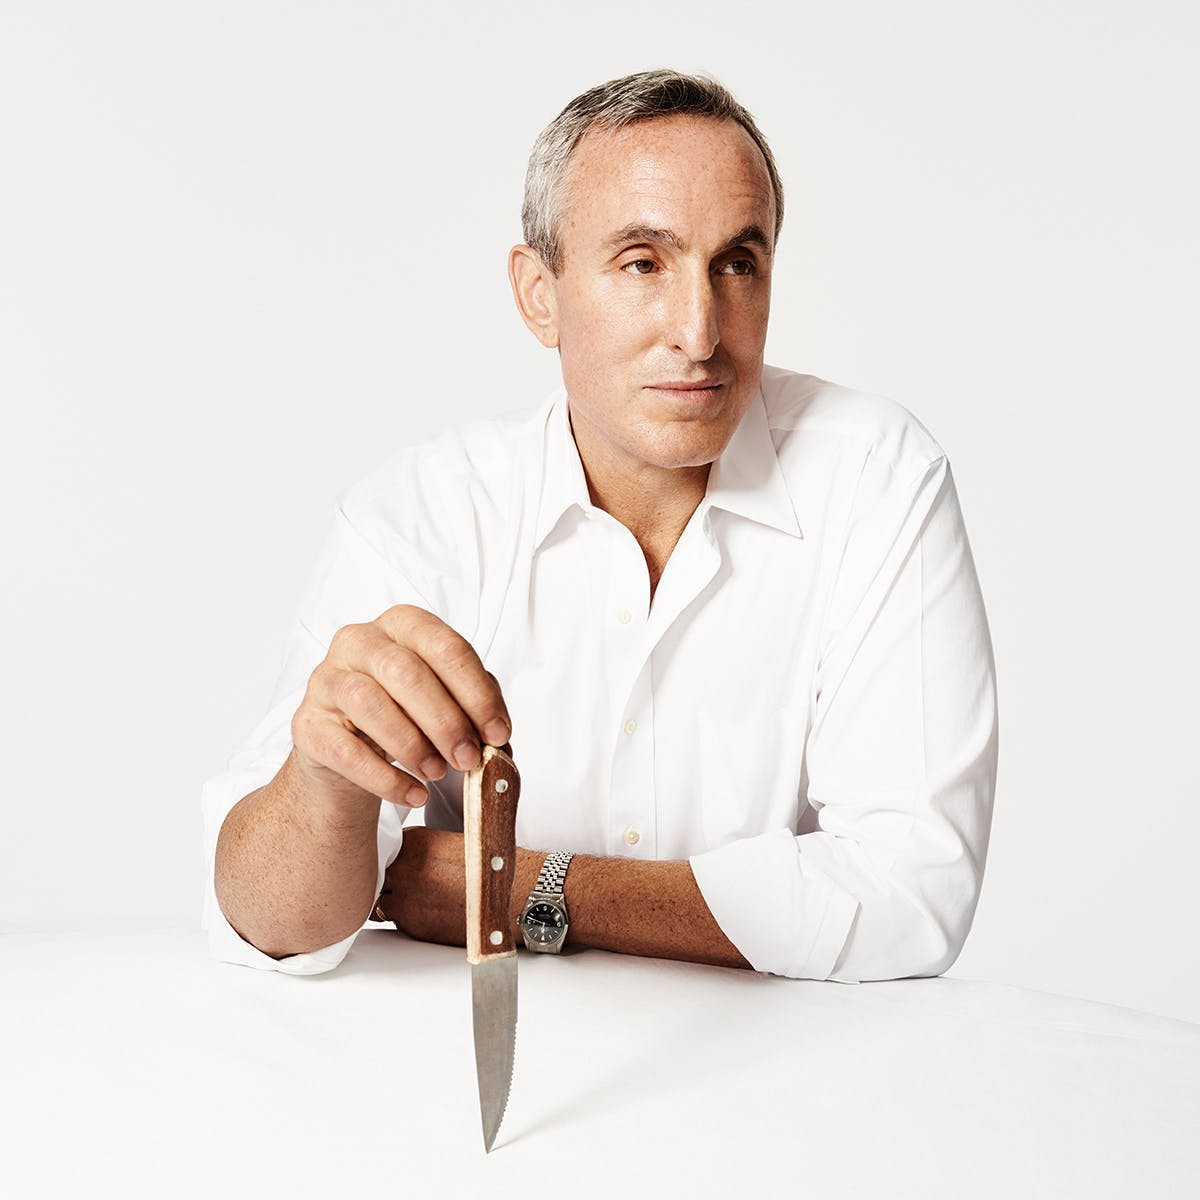 Is saturated fat still deadly? Are we still living in the 80s? Gary Taubes explains